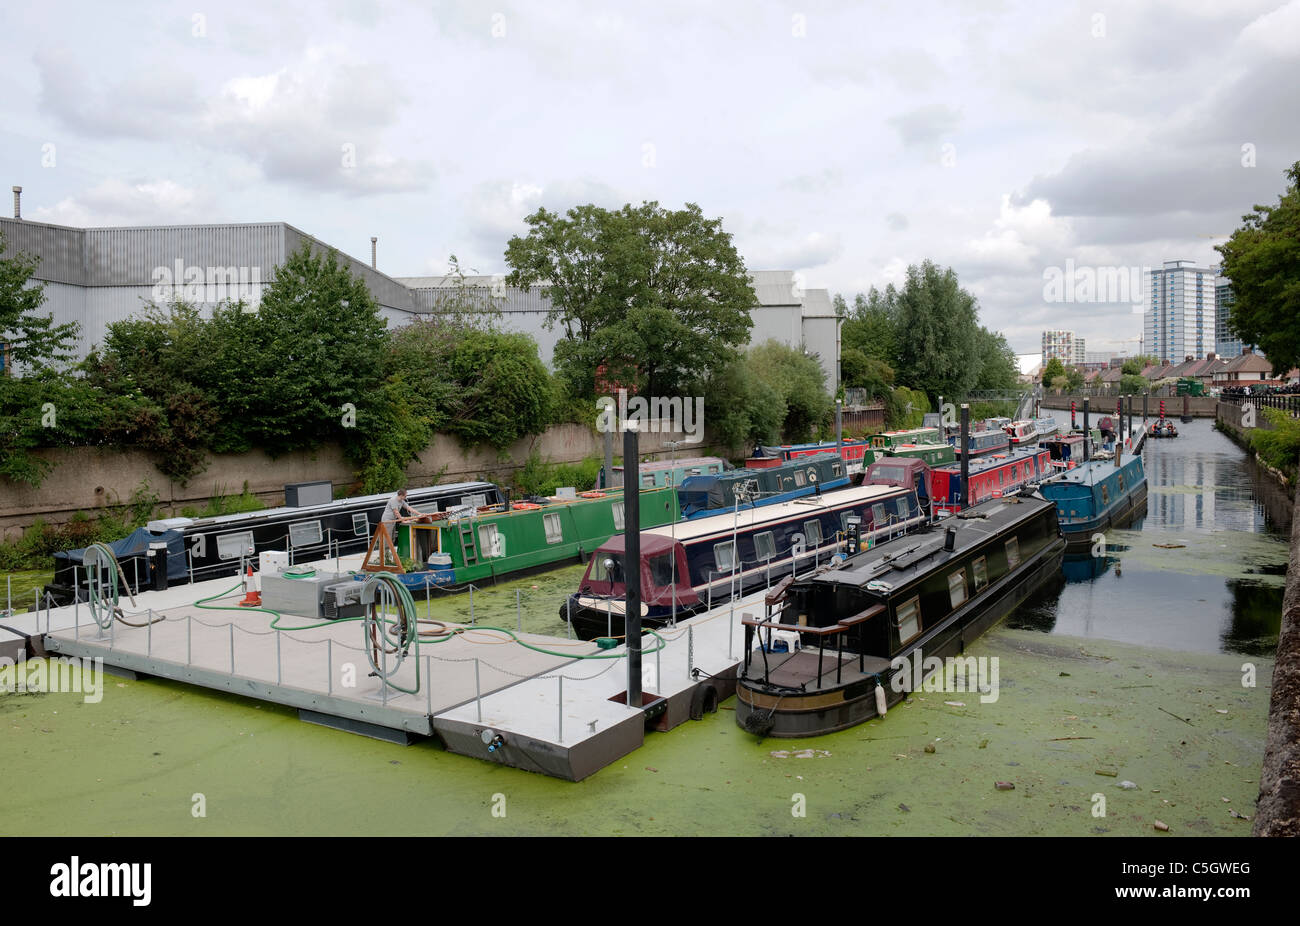 Narrow Boats Moored in Three Mills Wall River, Bromley-by-Bow London - Stock Image